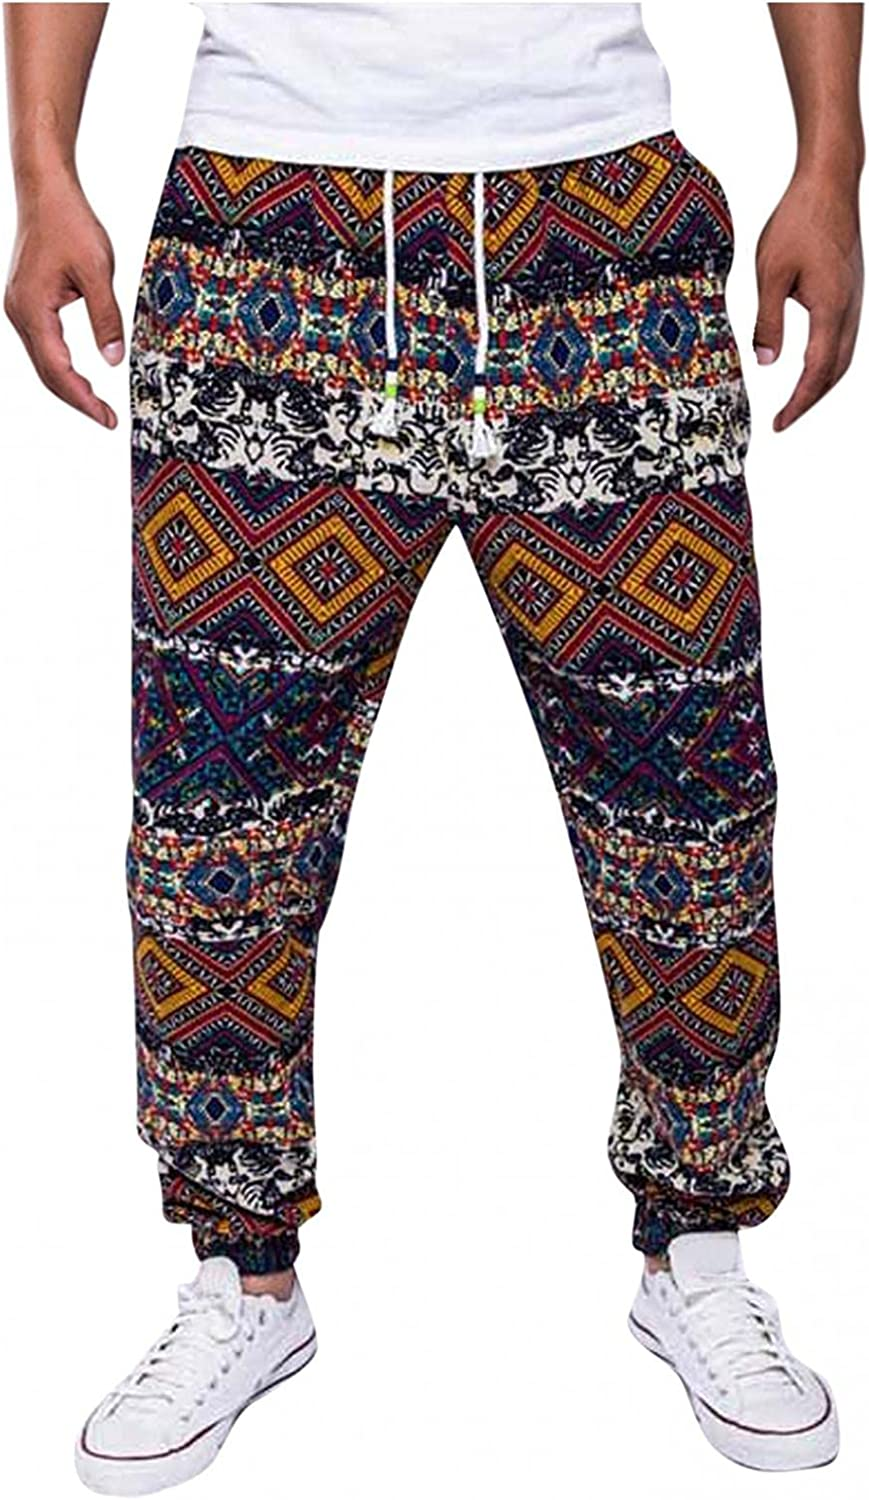 Mens Linen Pant Casual Ethnic Style String Printed Jogger Sweatpants Active Athletic Soft for Gym Daily Beach